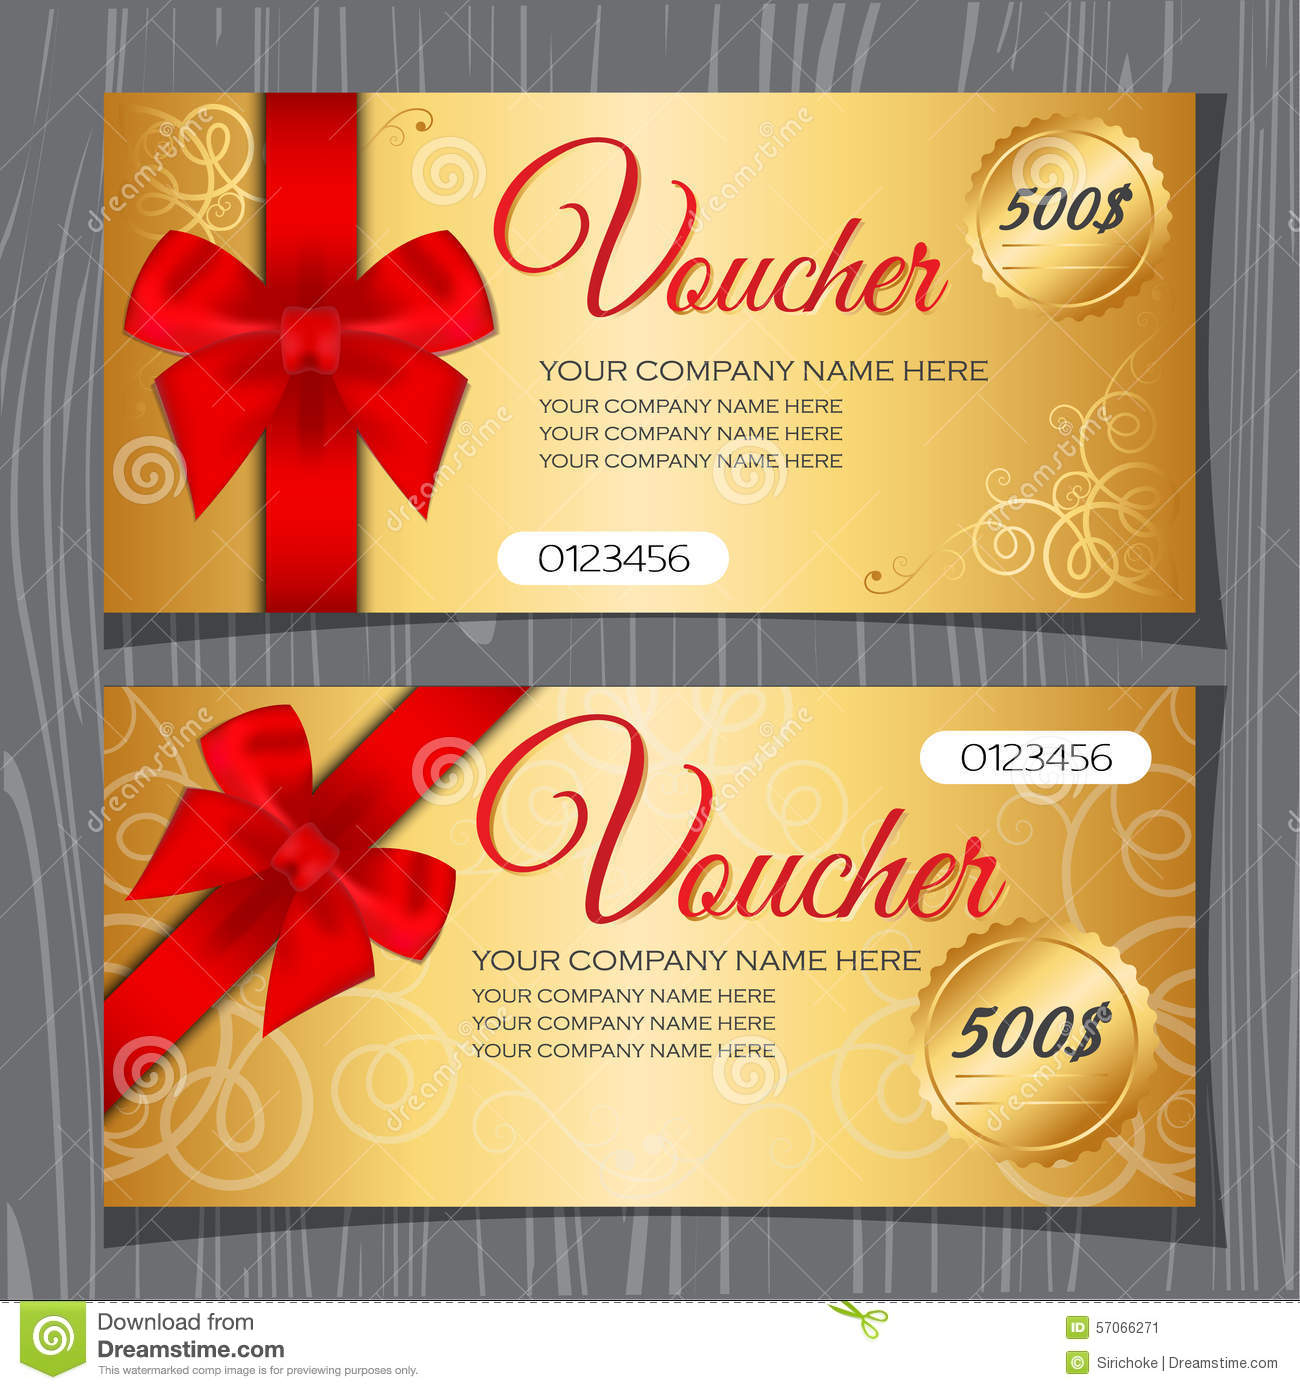 Voucher Template Gift Certificate Stock Image Image Of Invitation